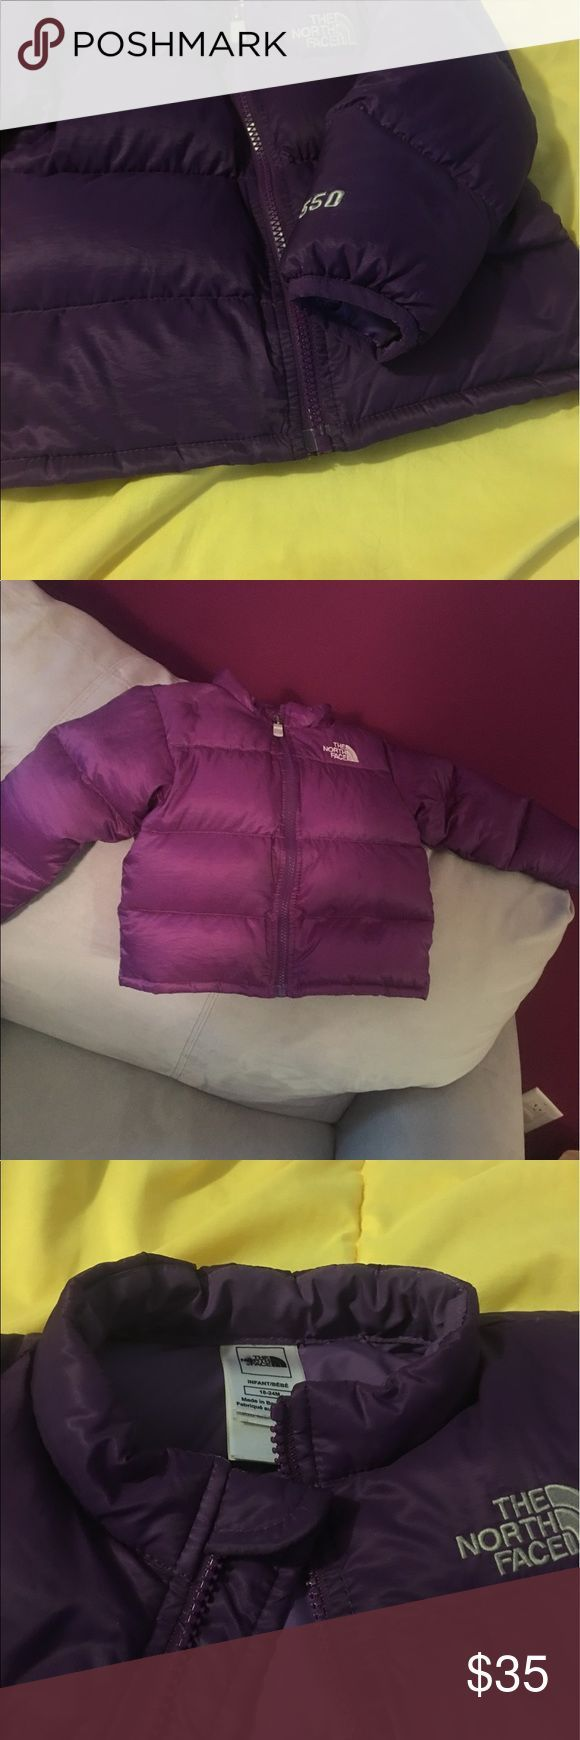 Puff Bubble Coat Kids UNISEX All Weather NORTH FACE Big Bubble Puff Coat.  This coat is good for any inclement weather in the winter rain hail sleet or snow North Face Jackets & Coats Puffers